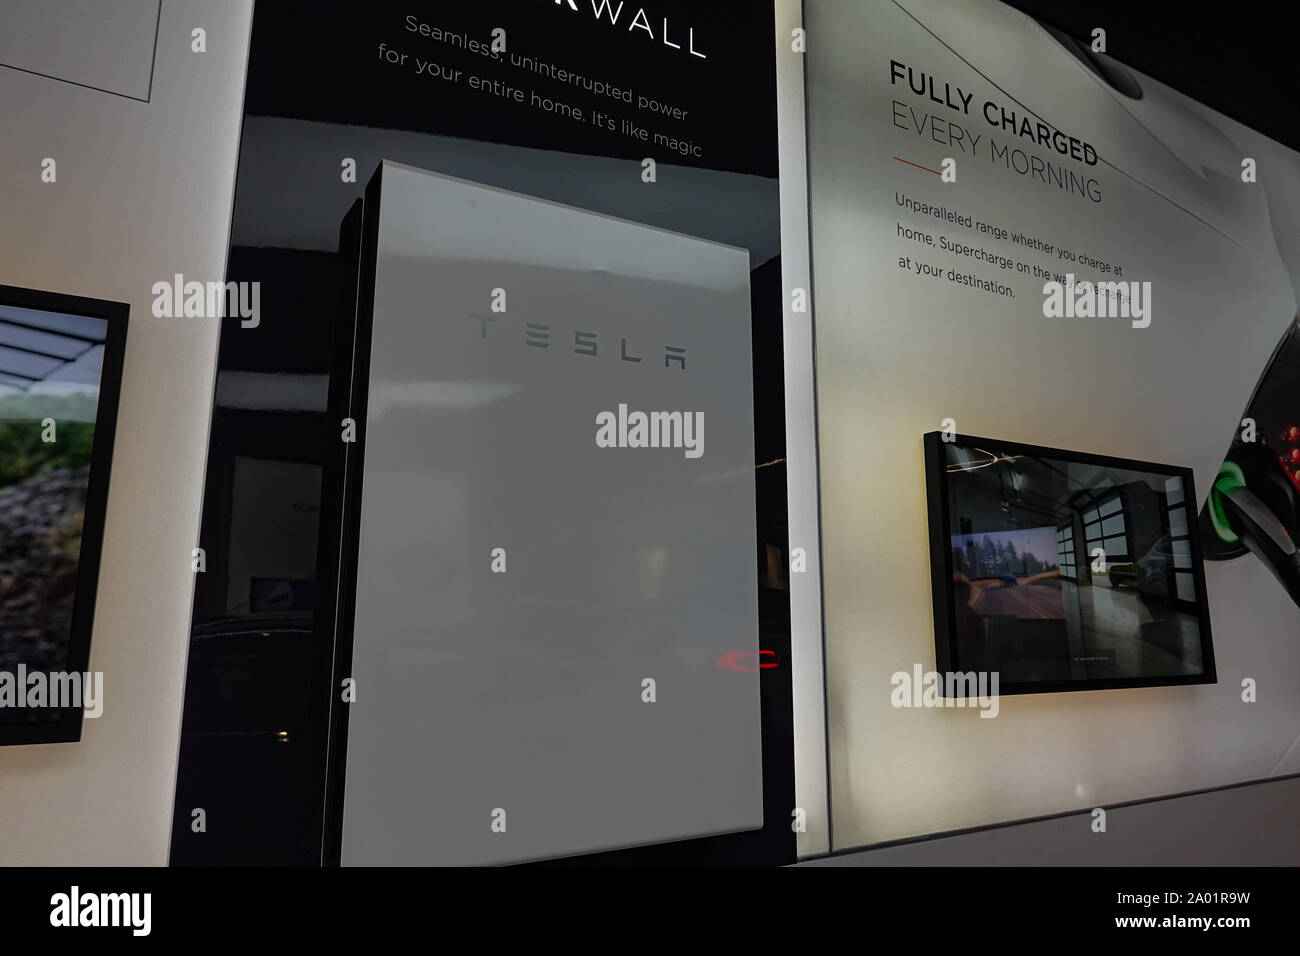 Seattle,WA/USA-9/15/29: A Tesla Battery Powerwall at the Tesla dealership in Seattle, WA.  Tesla, Inc. is an American automotive and energy company th Stock Photo